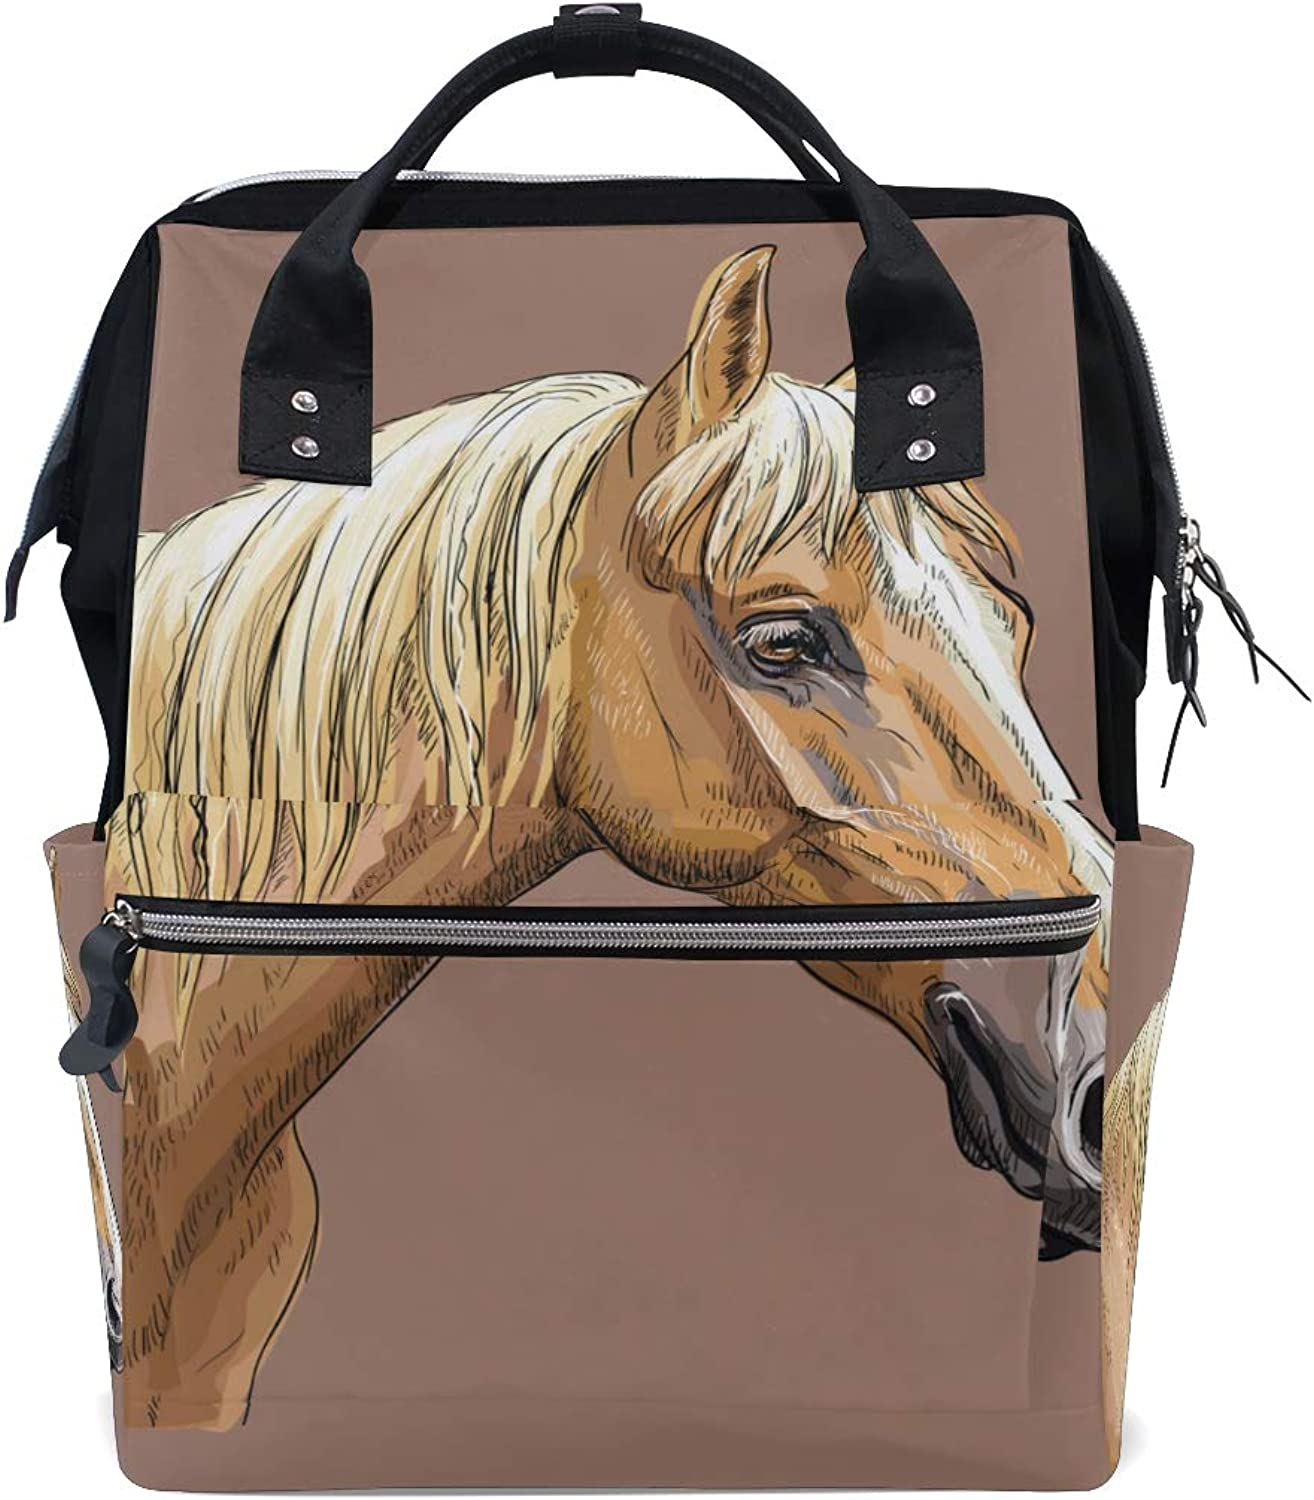 ColourLife Diaper bag Backpack Portrait Of Palomino Horse Casual Daypack Multifunctional Nappy Bags for Women Girls